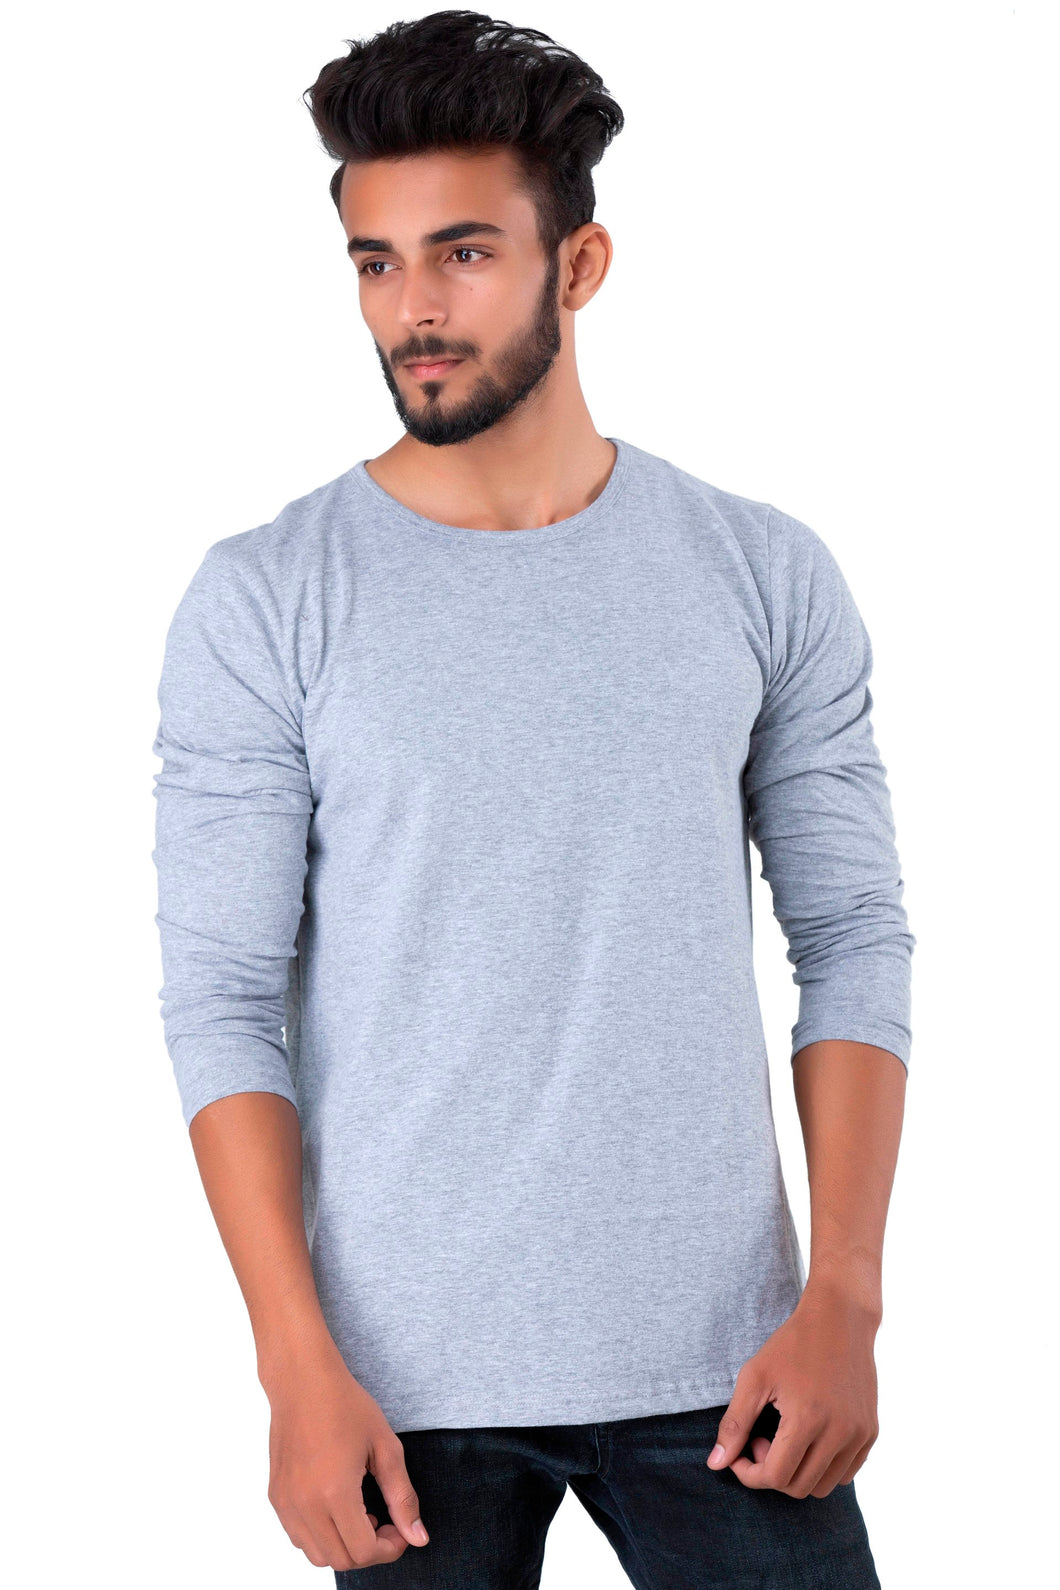 Full Sleeve Melange Plain Round neck Tee